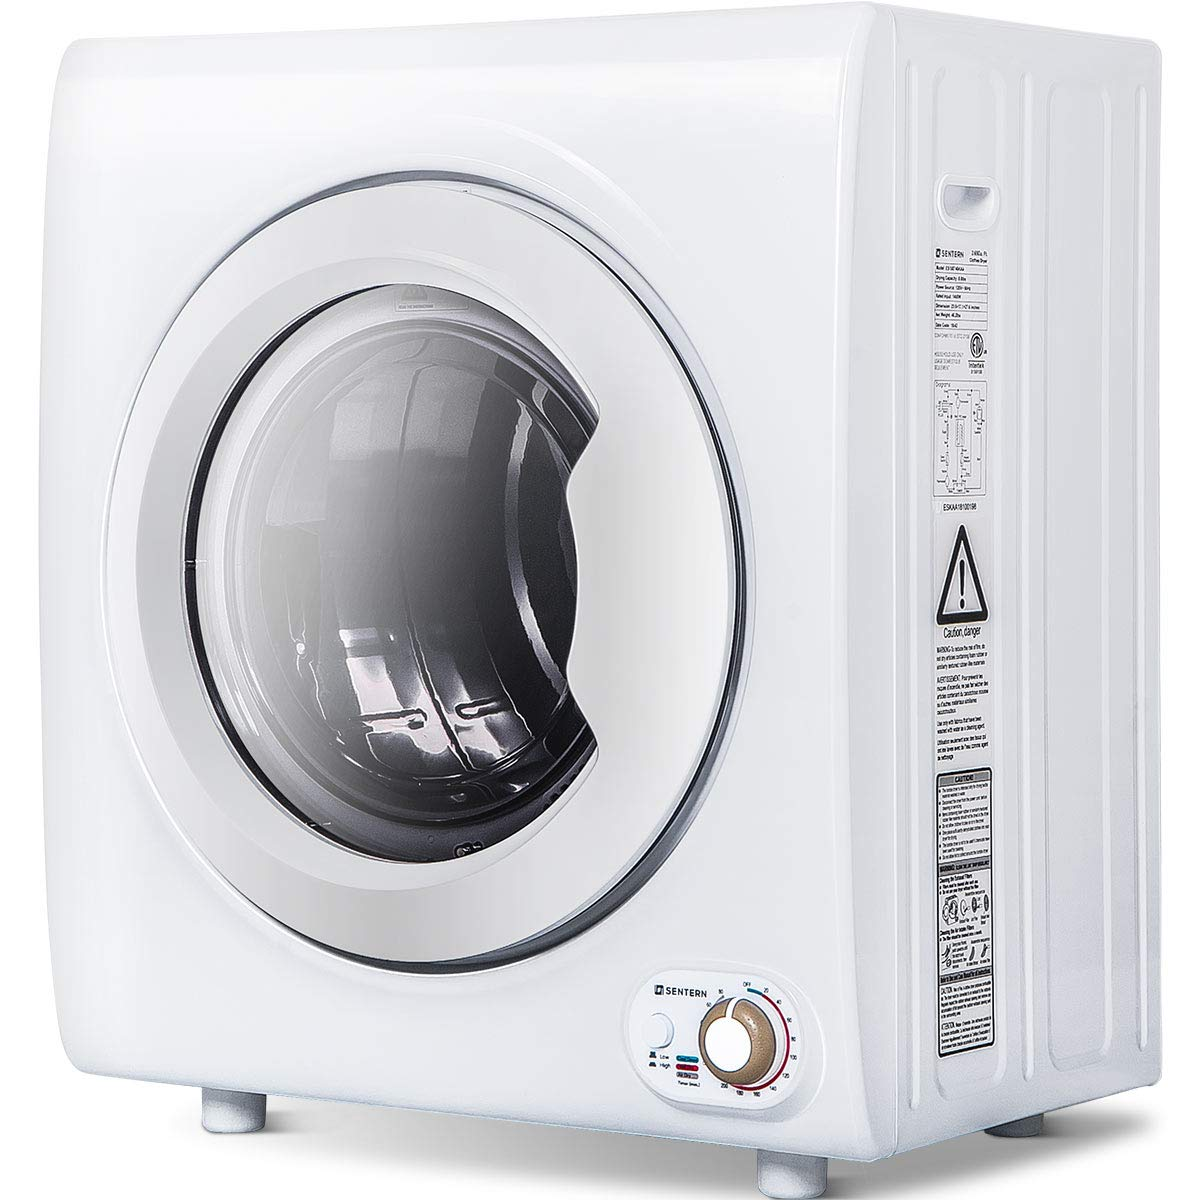 Sentern 2.65 Cu.Ft Compact Laundry Dryer - 8.8 LBS Capacity Portable Clothes Dryer with 1400W Drying Power (White) Merax